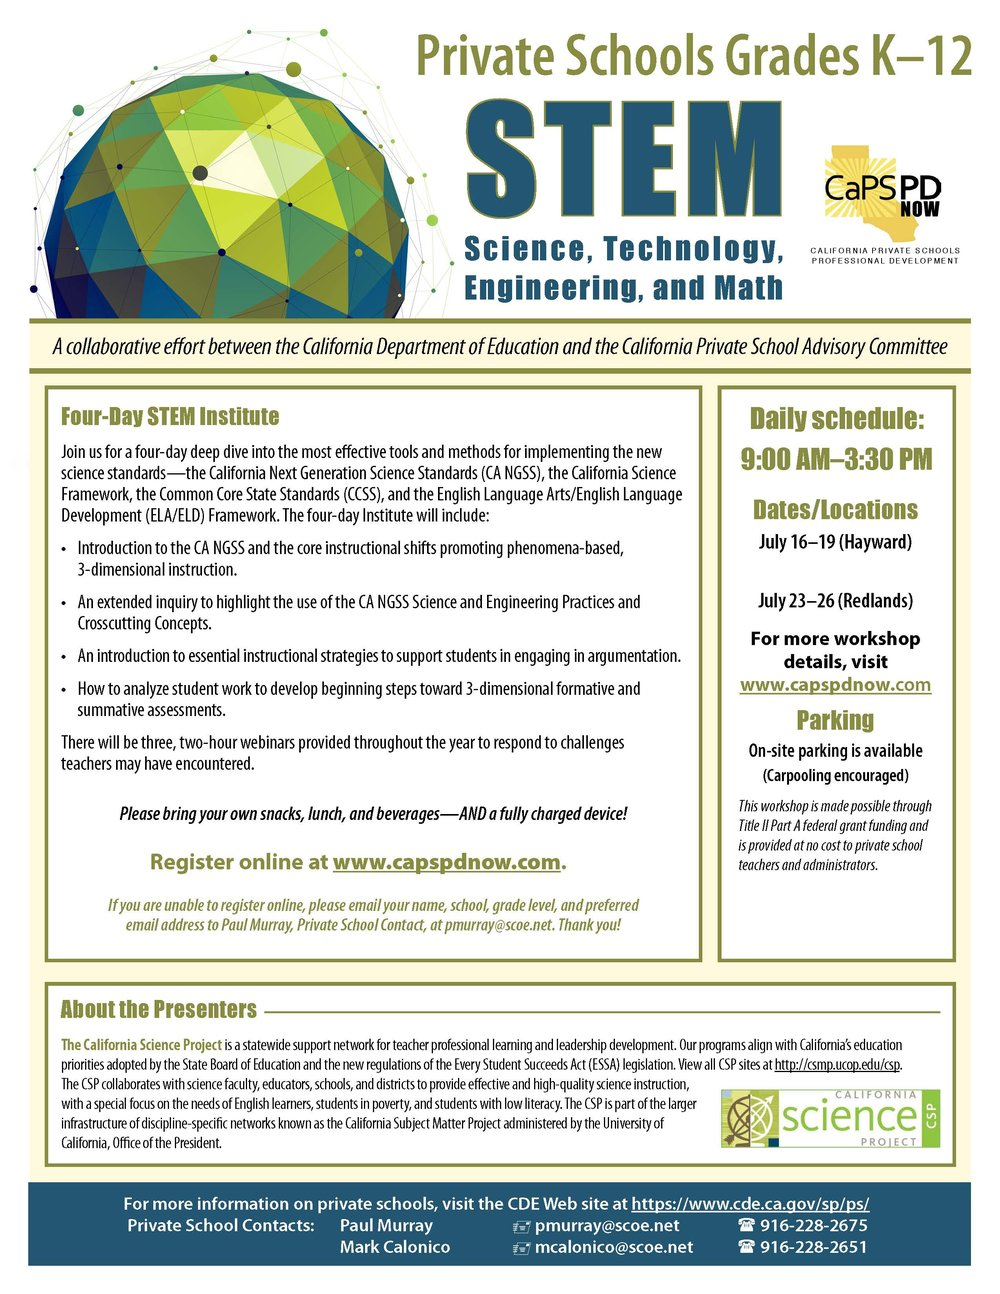 Picture of the flyer for the Summer STEM Institutes